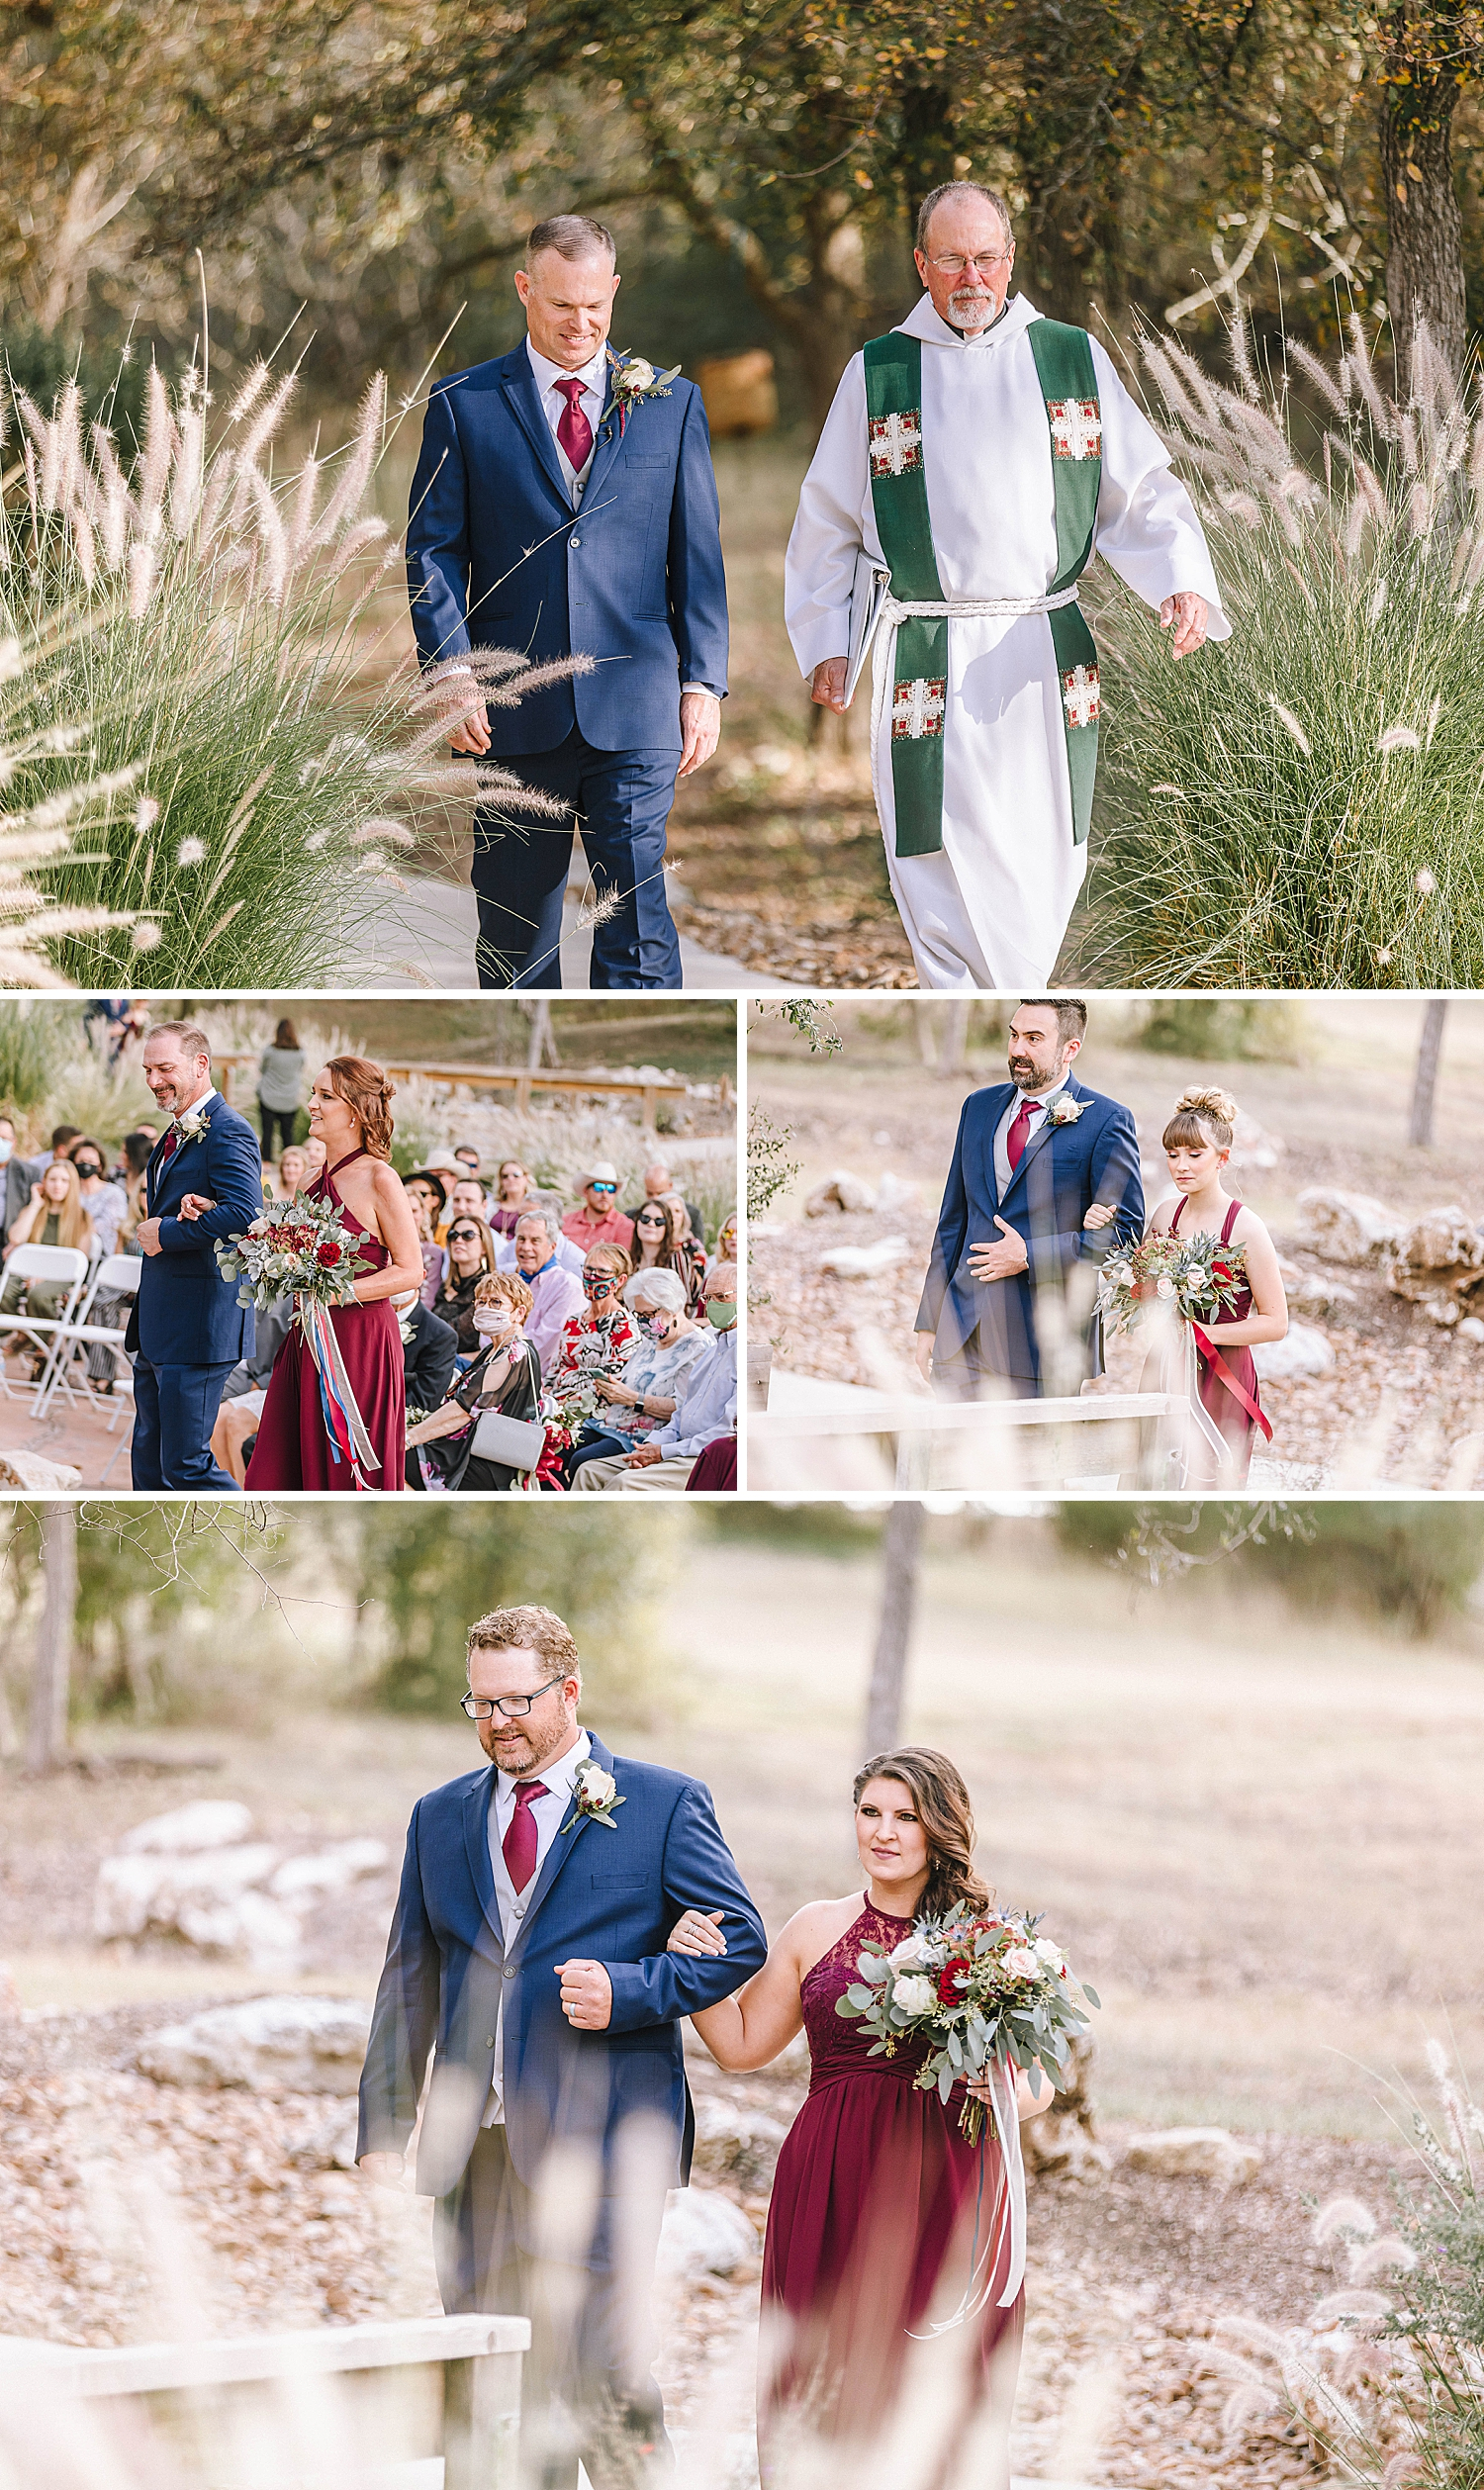 Geronimo-Oaks-Wedding-Venue-Seguin-Texas-Elegant-Navy-Burgundy-Wedding-Carly-Barton-Photography_0024.jpg